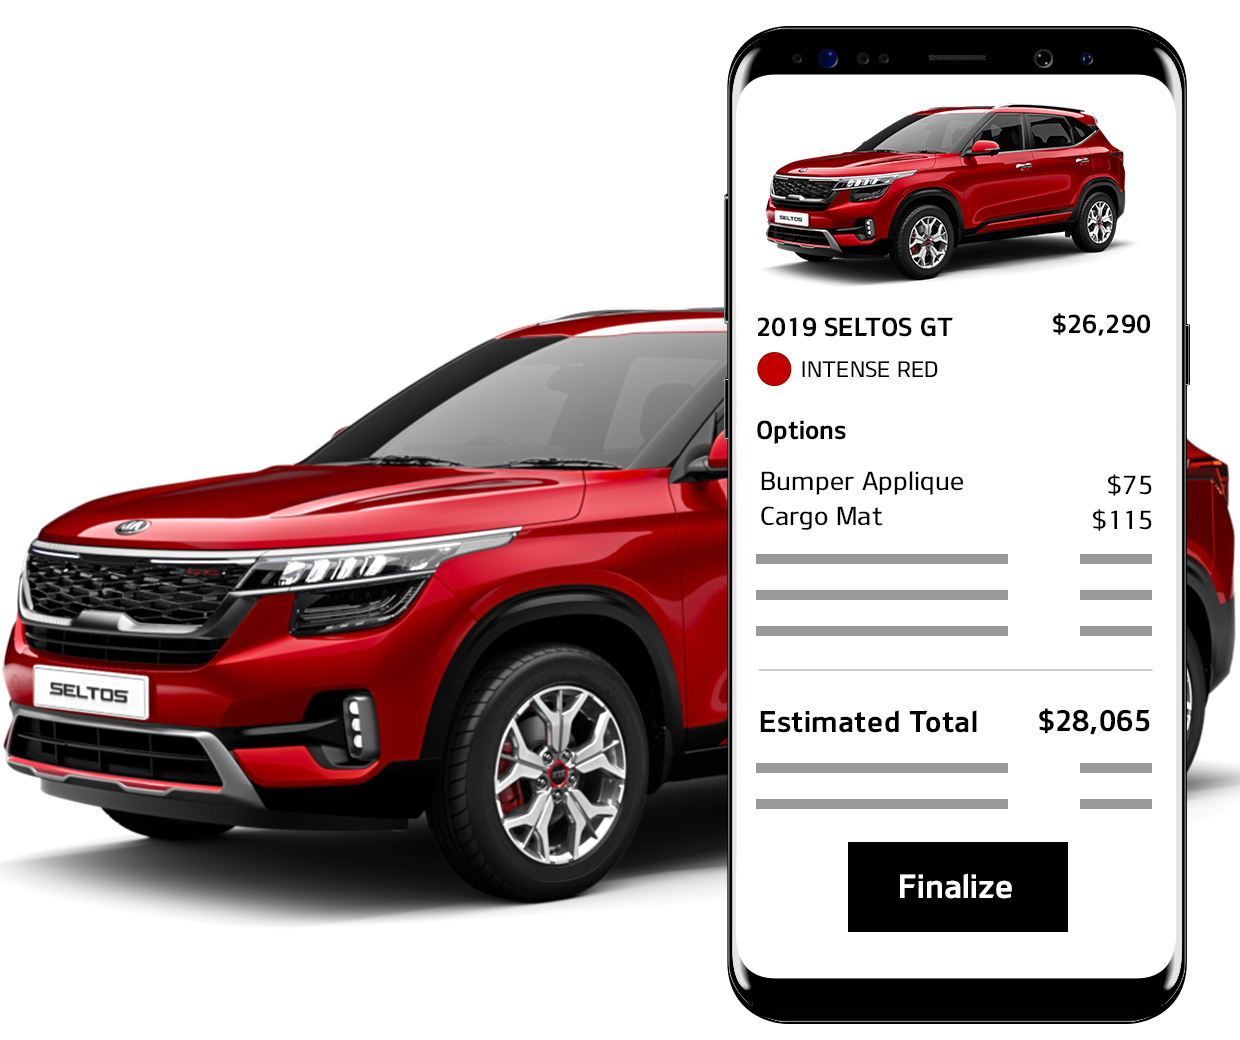 Finalize Your Kia Car Purchase